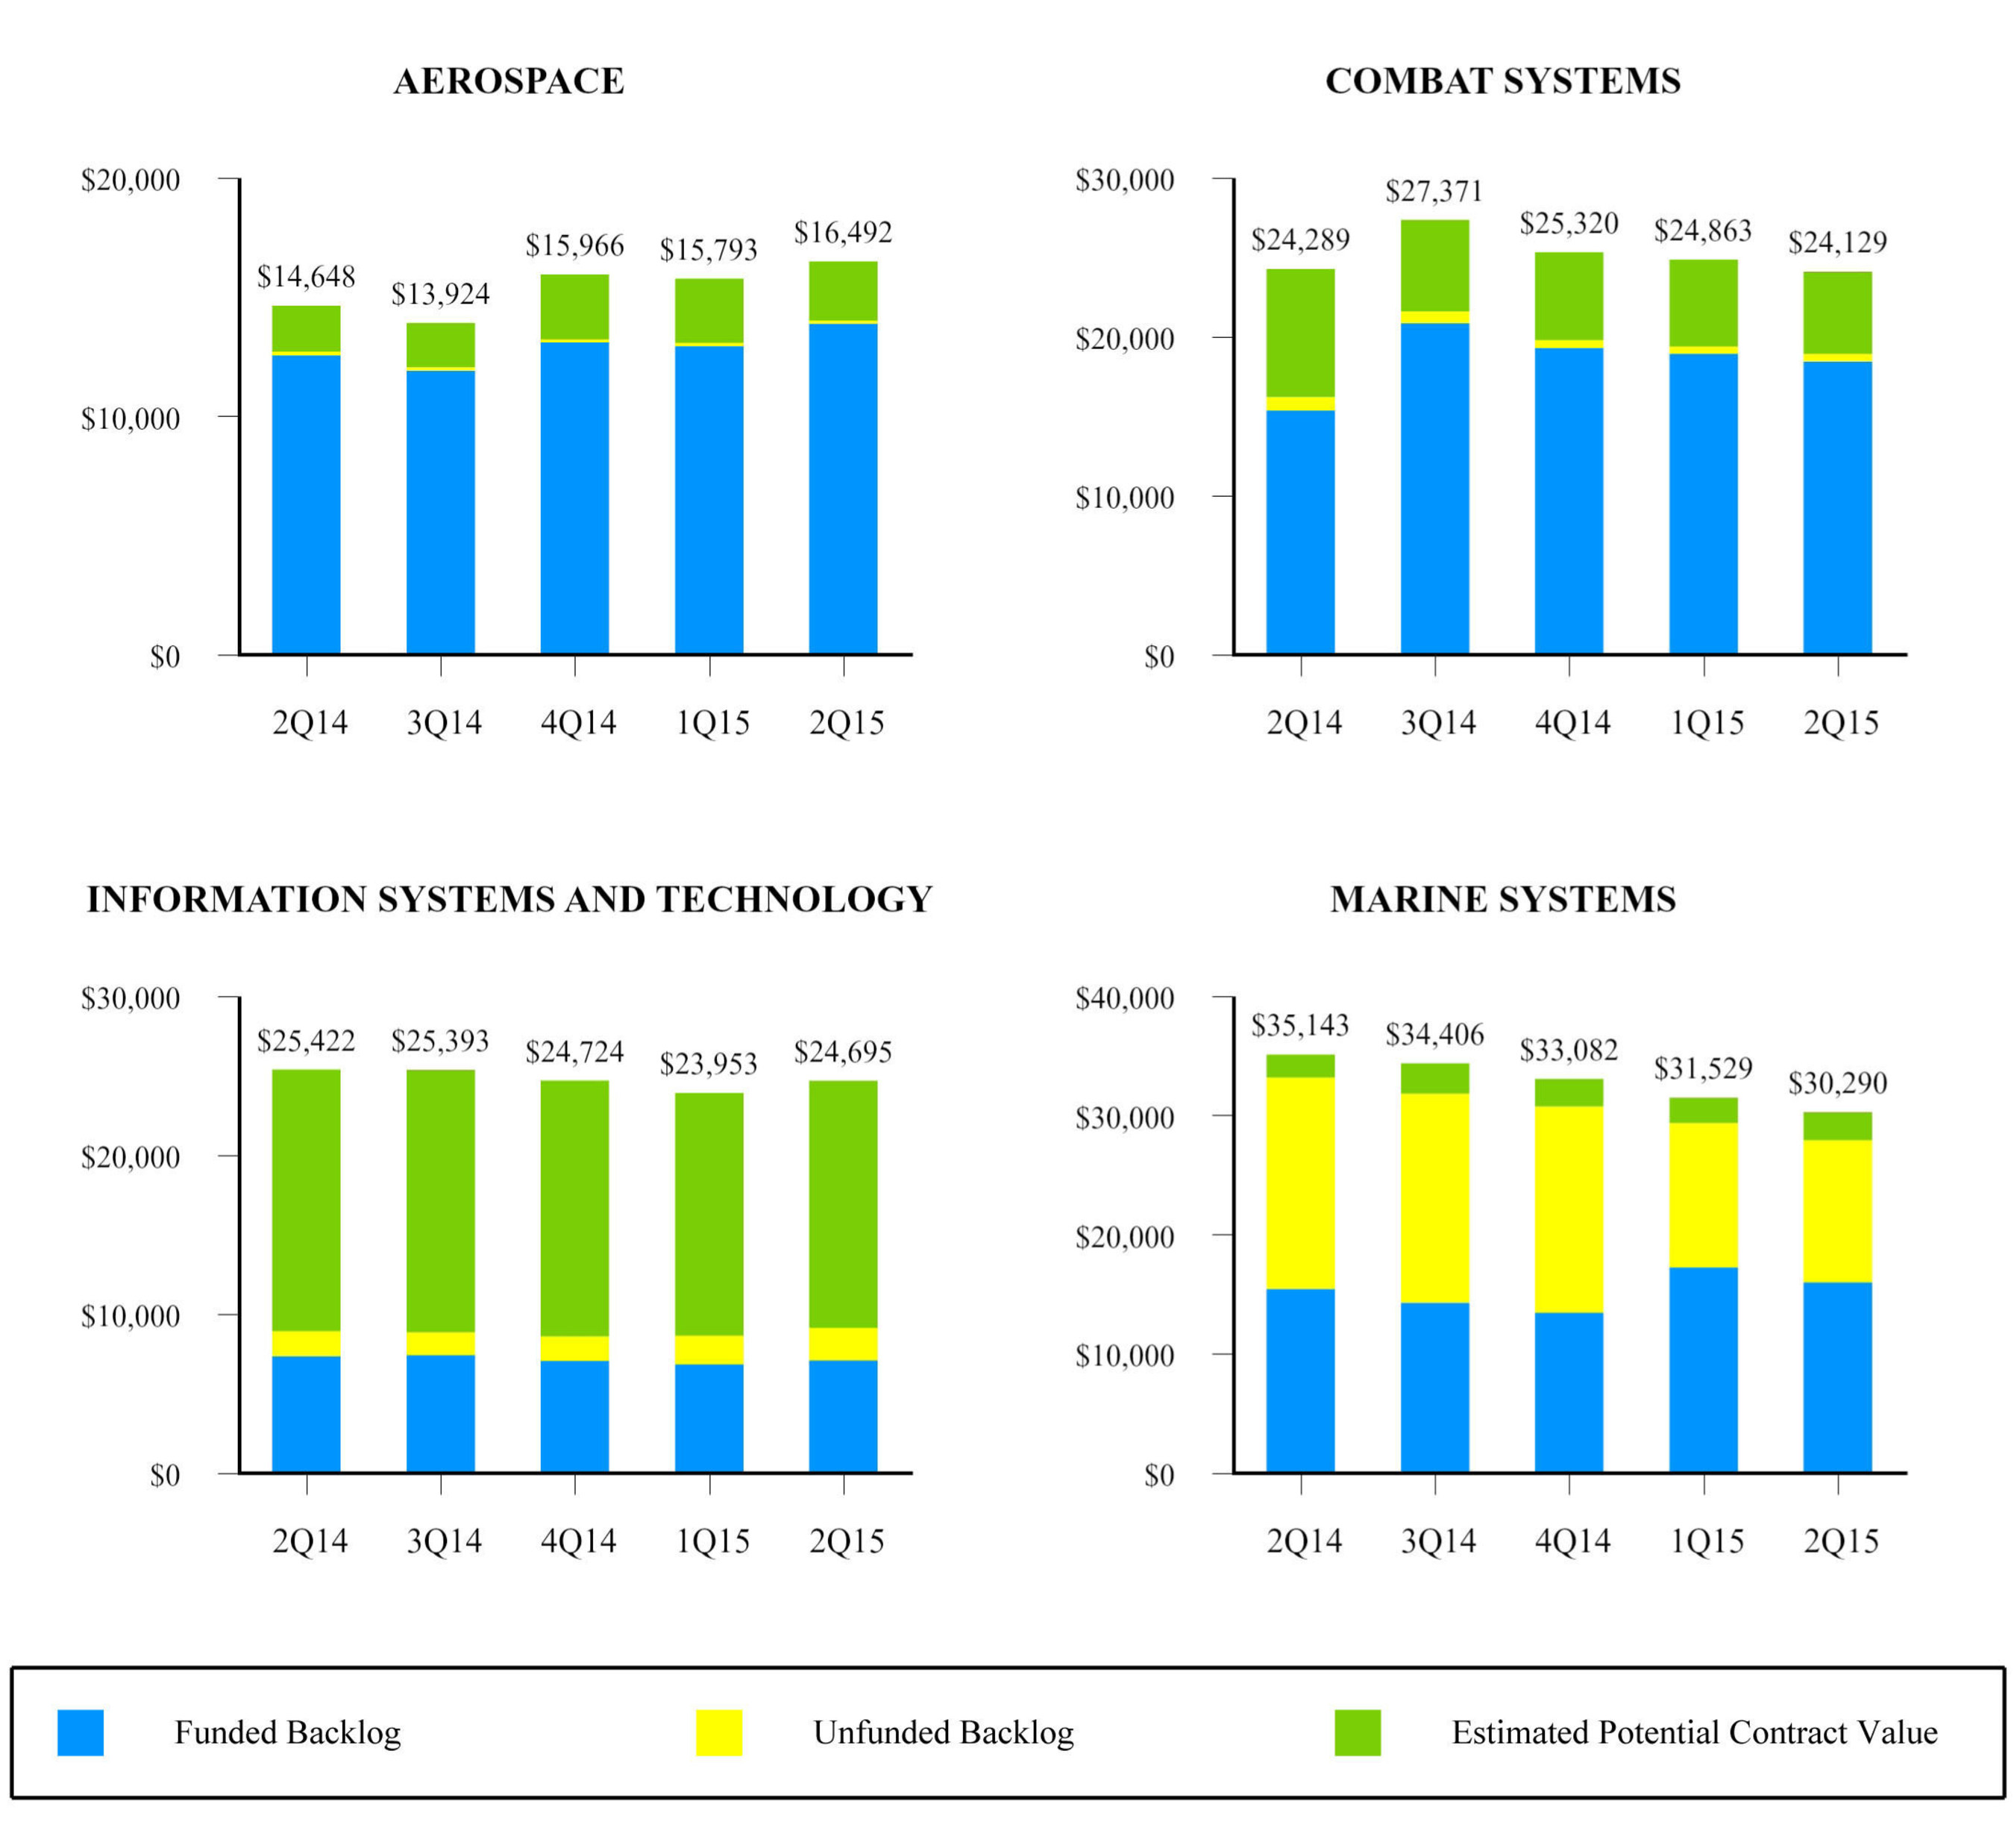 EXHIBIT H-2: BACKLOG AND ESTIMATED CONTRACT VALUE BY SEGMENT - (UNAUDITED) DOLLARS IN MILLIONS